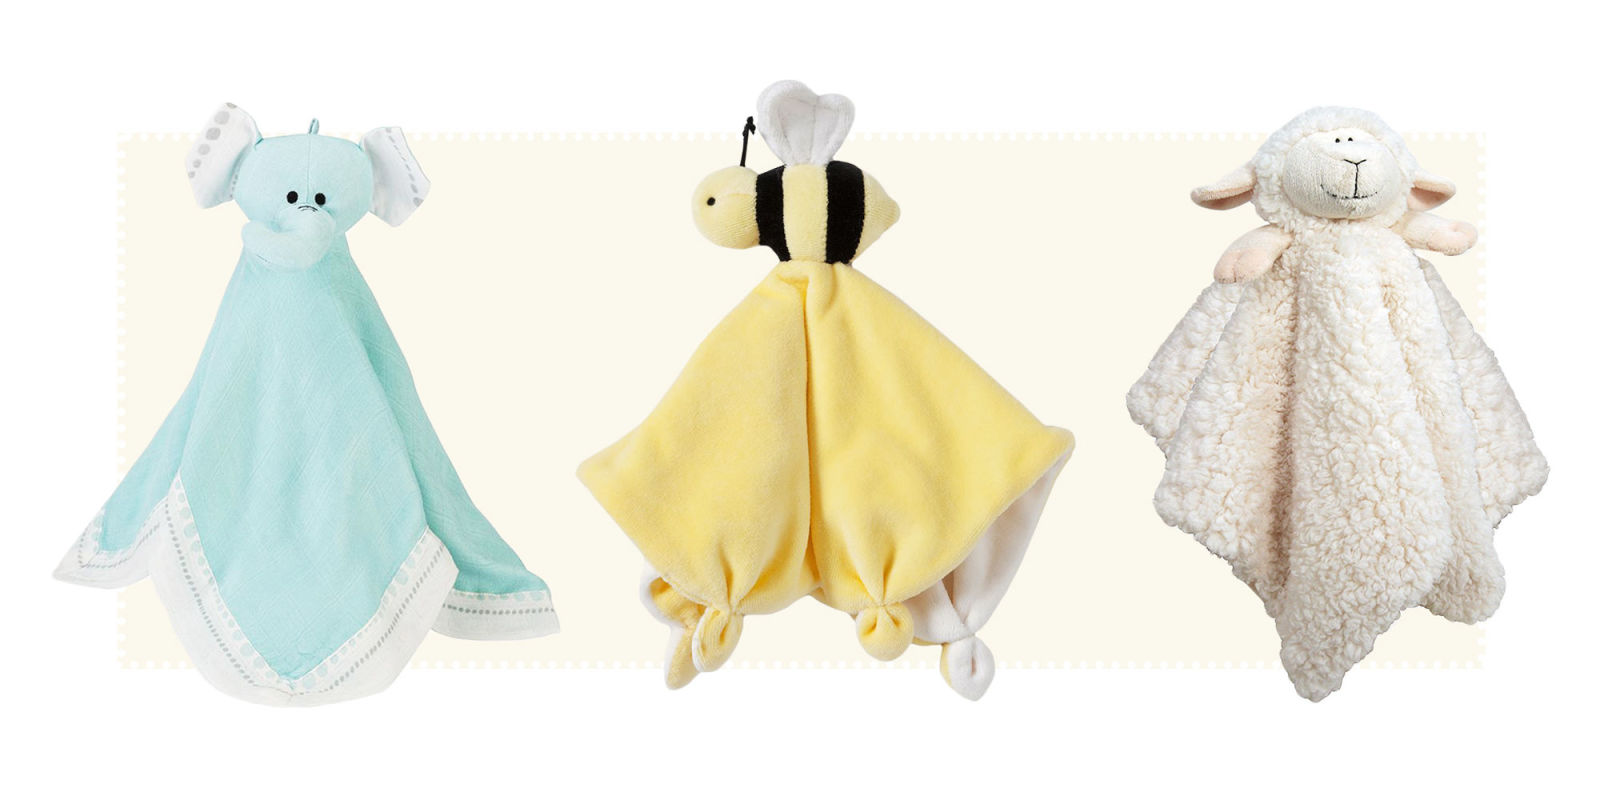 Crib mobiles bad for babies - Loveys Baby Blankets